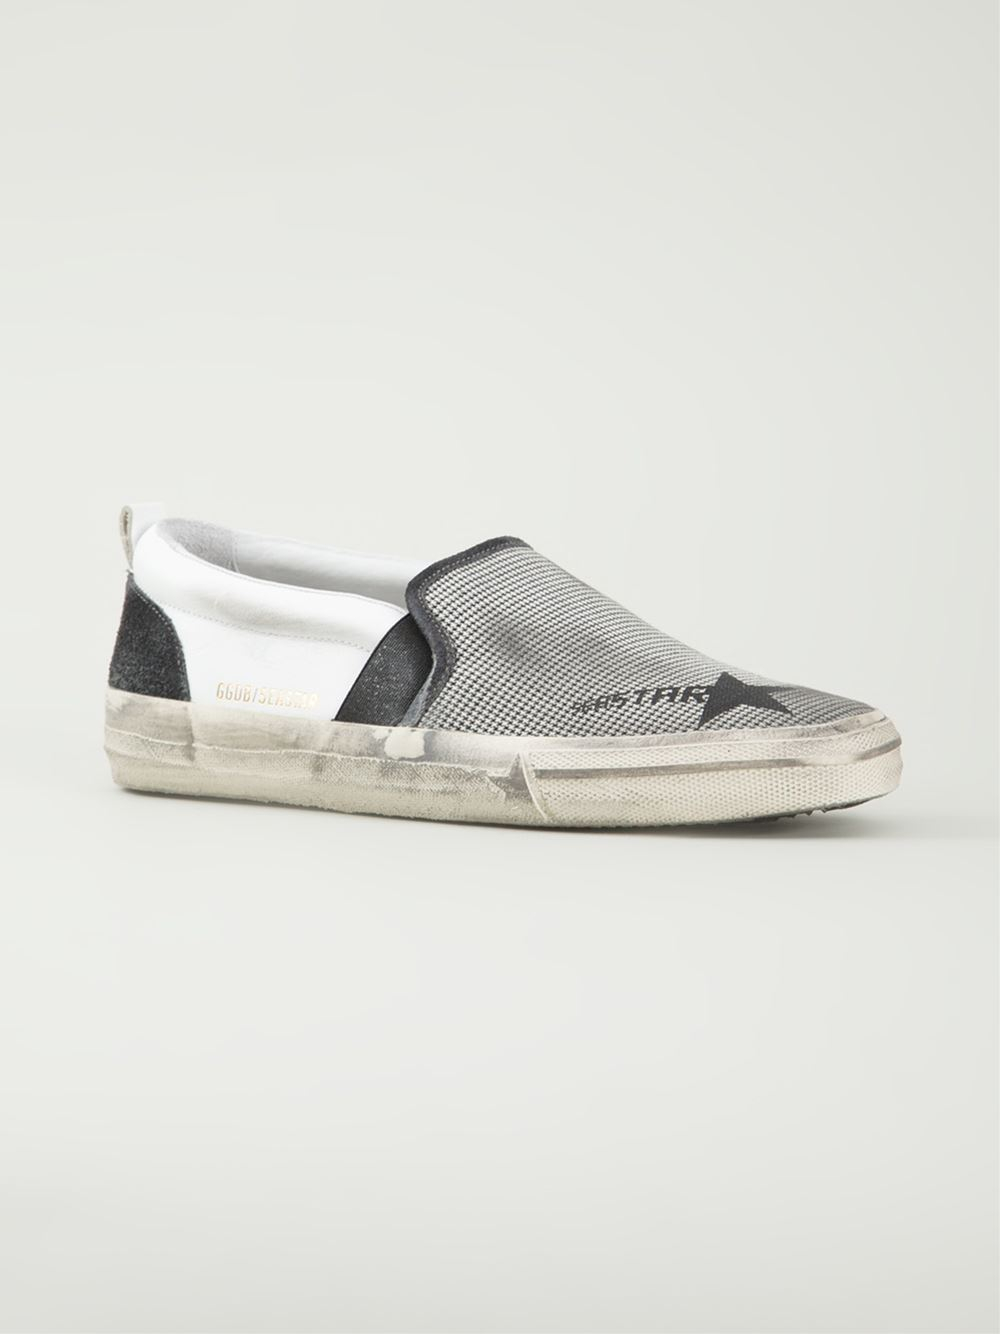 golden goose deluxe brand 39 seastar 39 slip on sneakers in silver white lyst. Black Bedroom Furniture Sets. Home Design Ideas